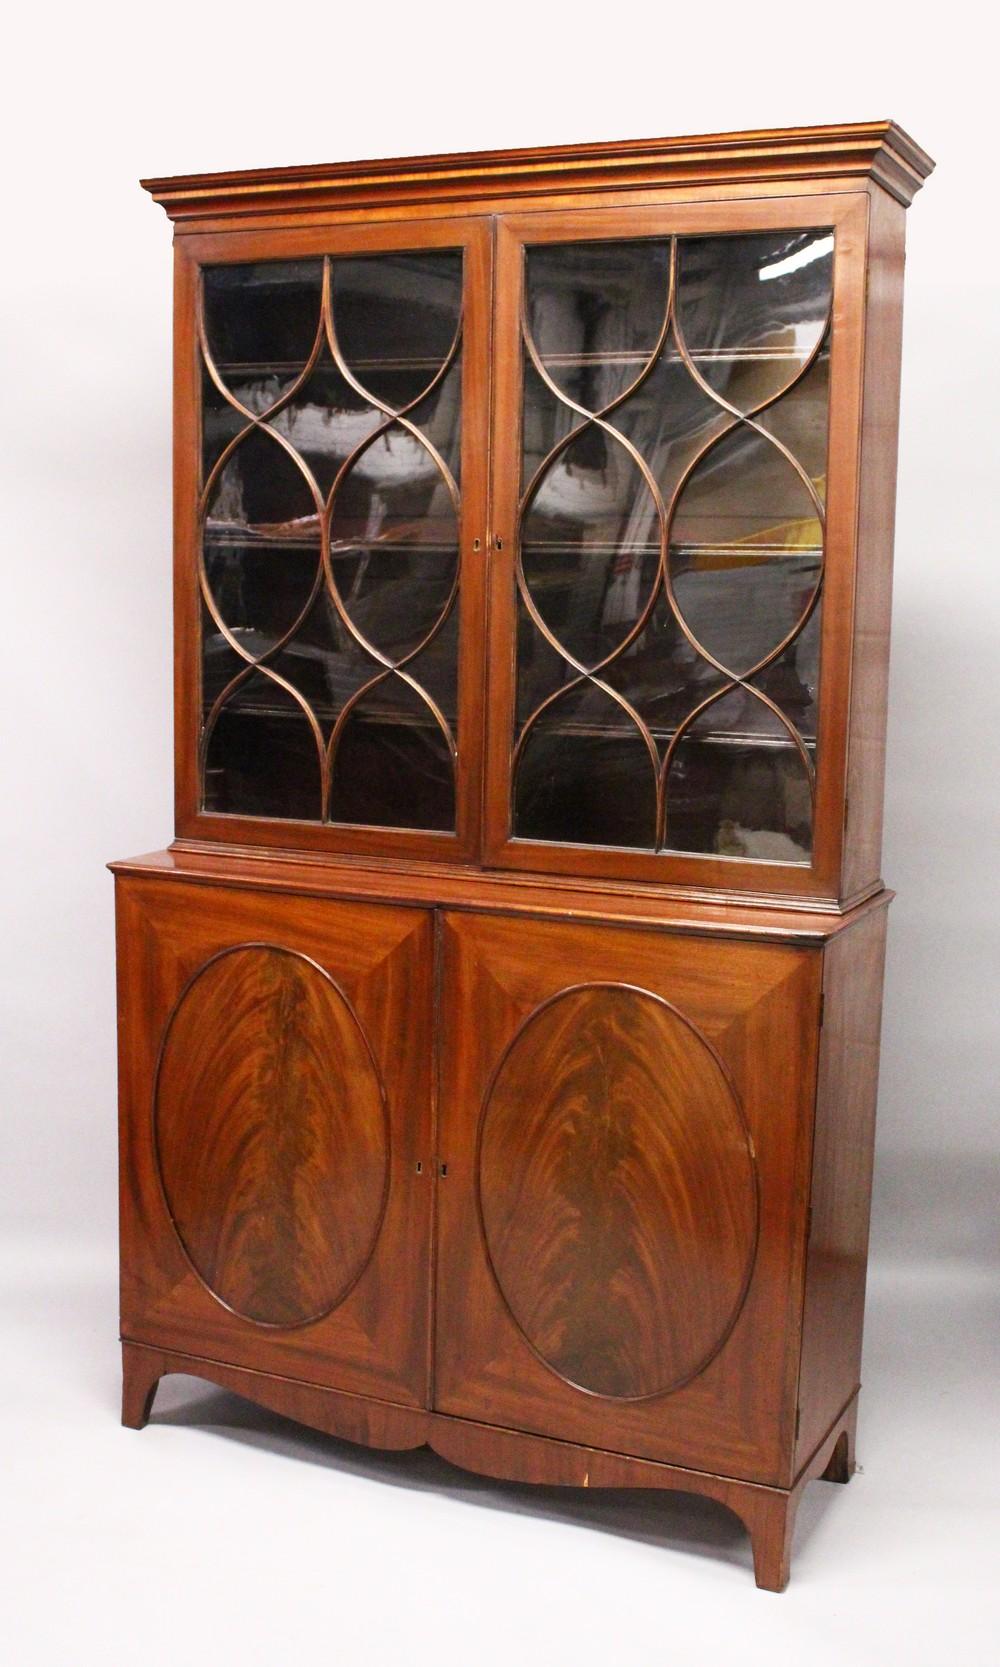 A GEORGE III DESIGN MAHOGANY CUPBOARD BOOKCASE, 19TH CENTURY, with a moulded cornice, pair of